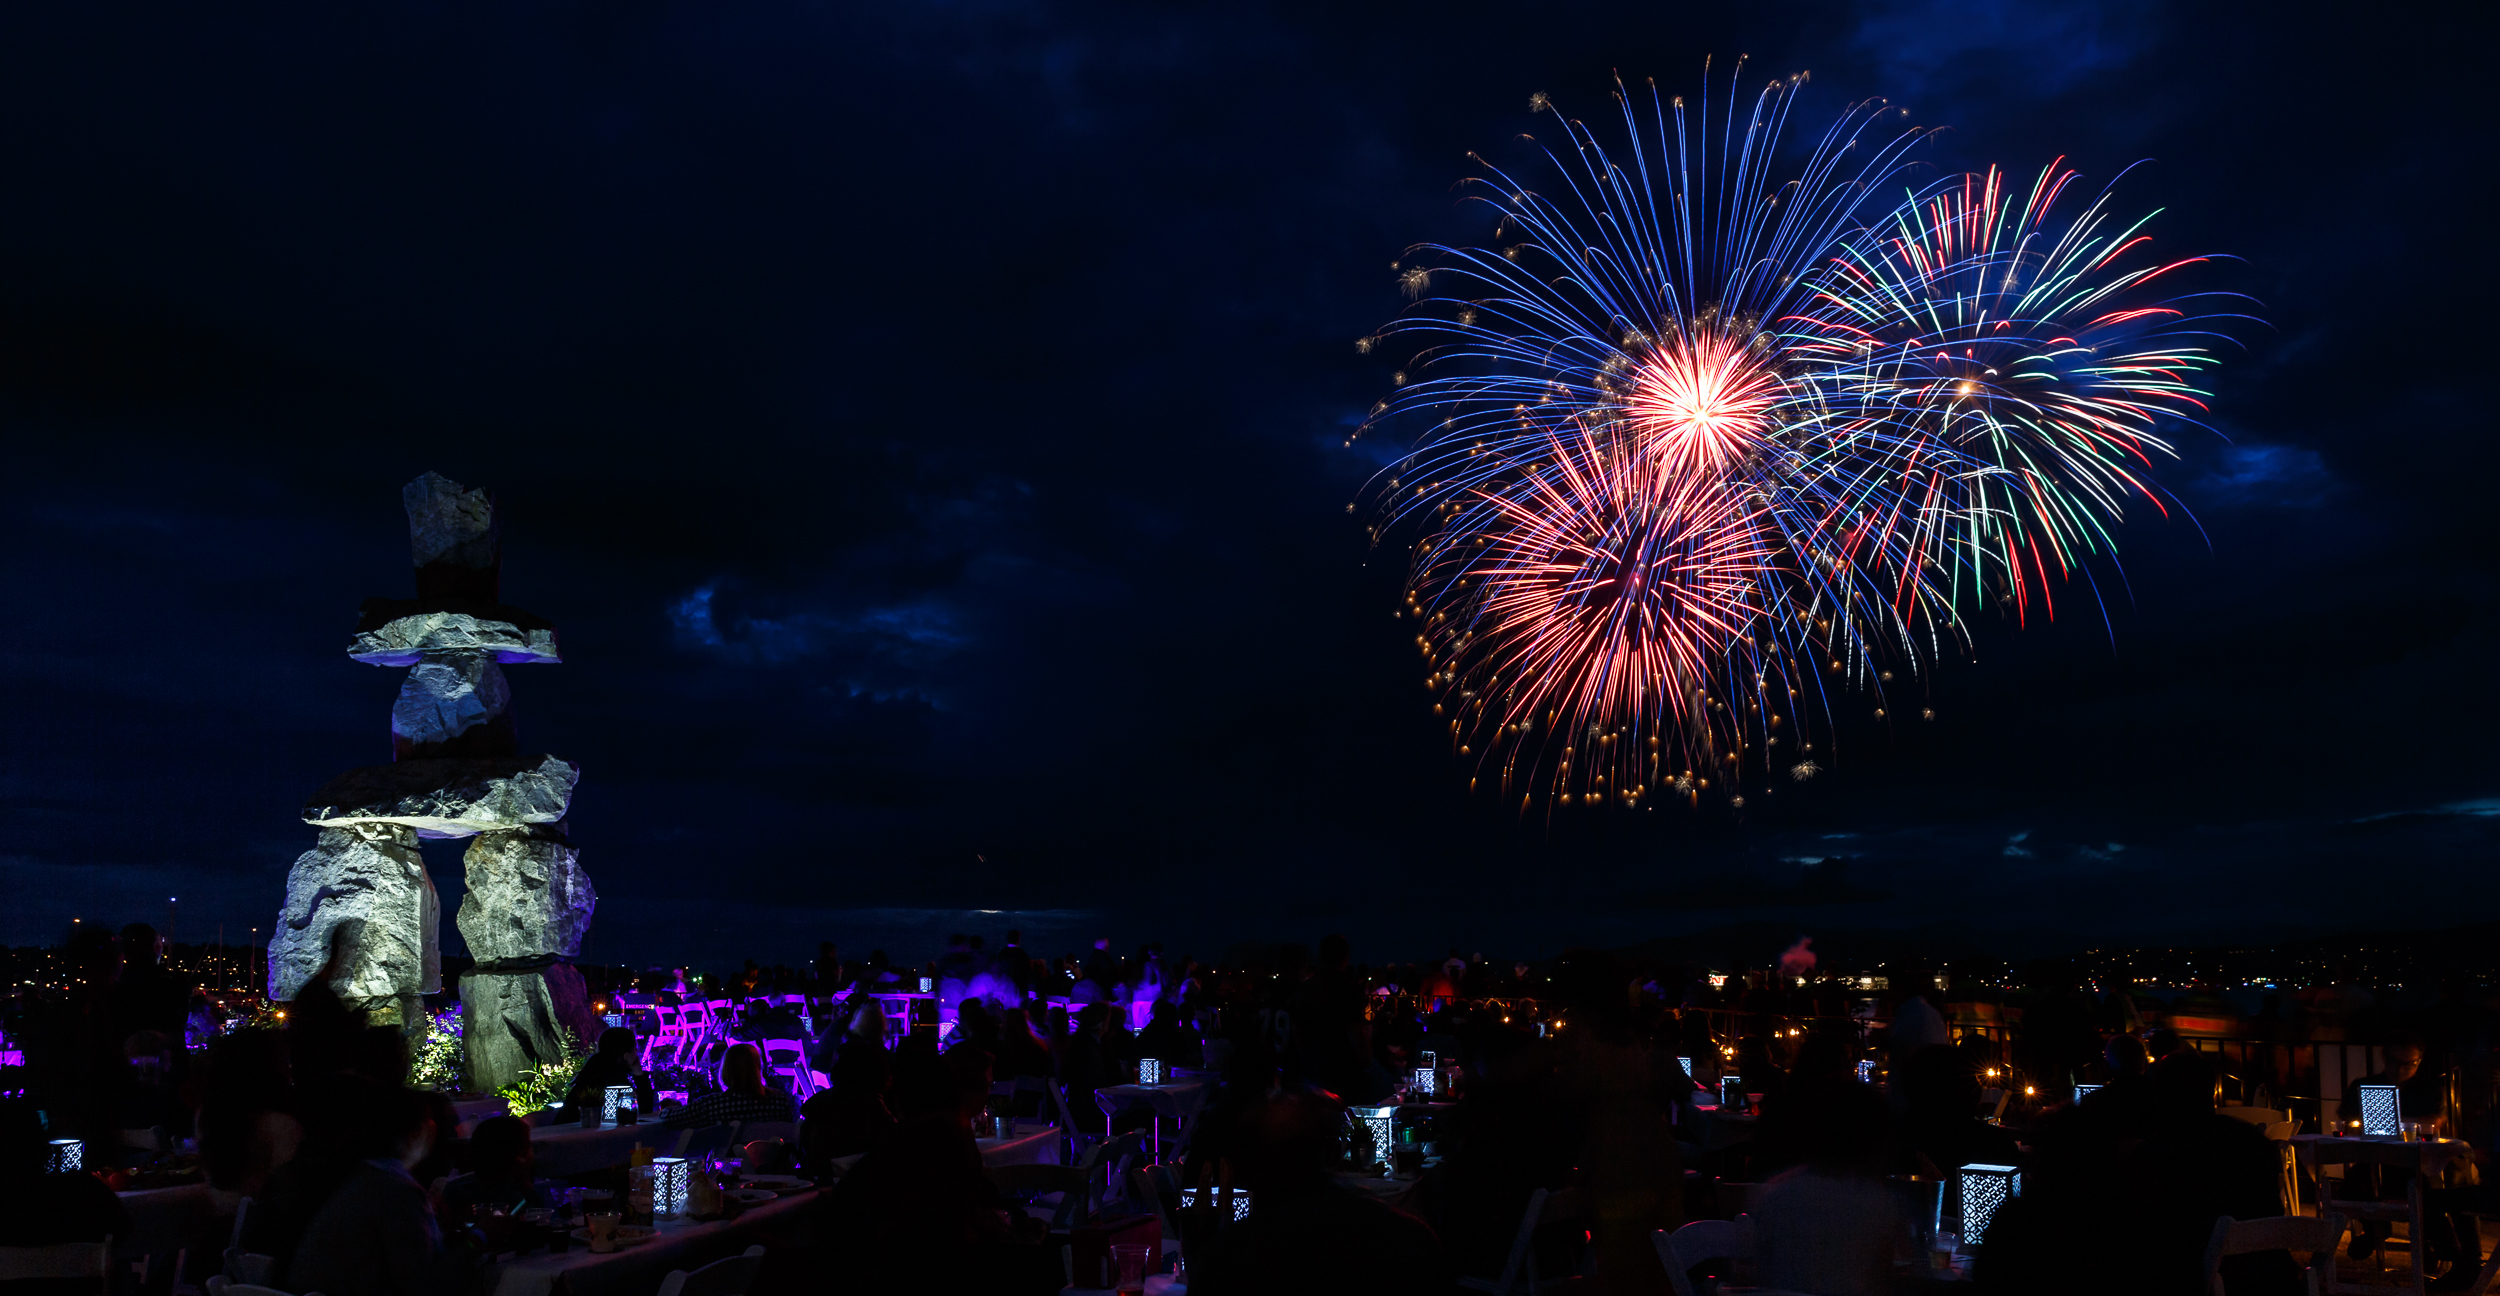 Celebration-Of-Light-2015-image12.jpg